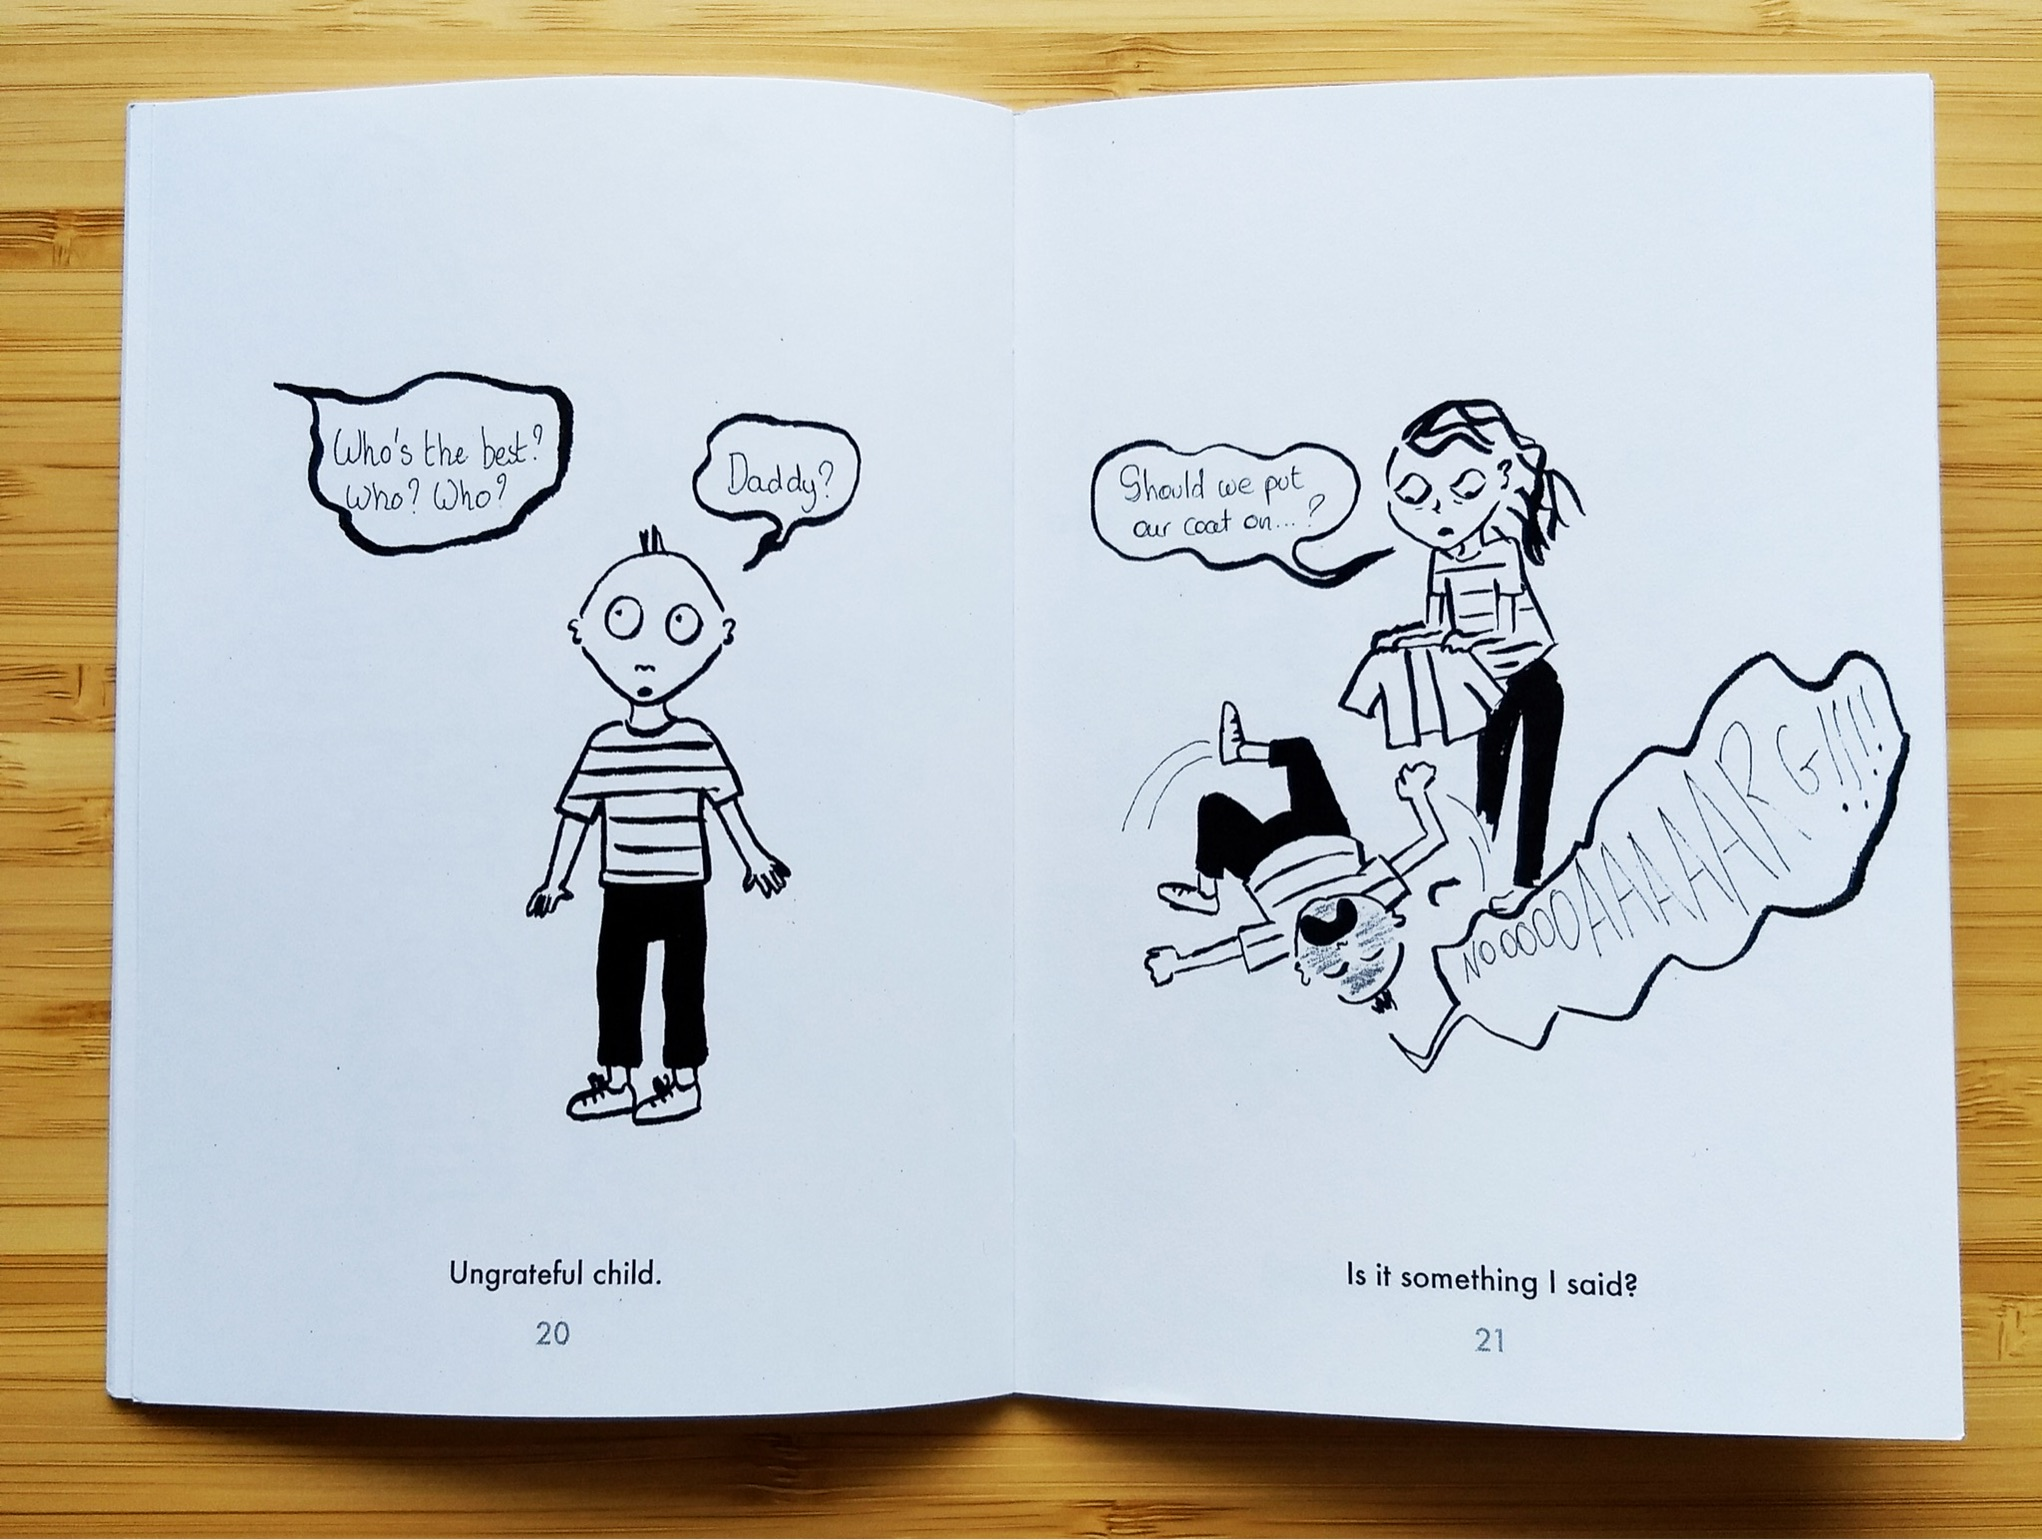 Toddler Moments by Camille Aubry - Sample Art